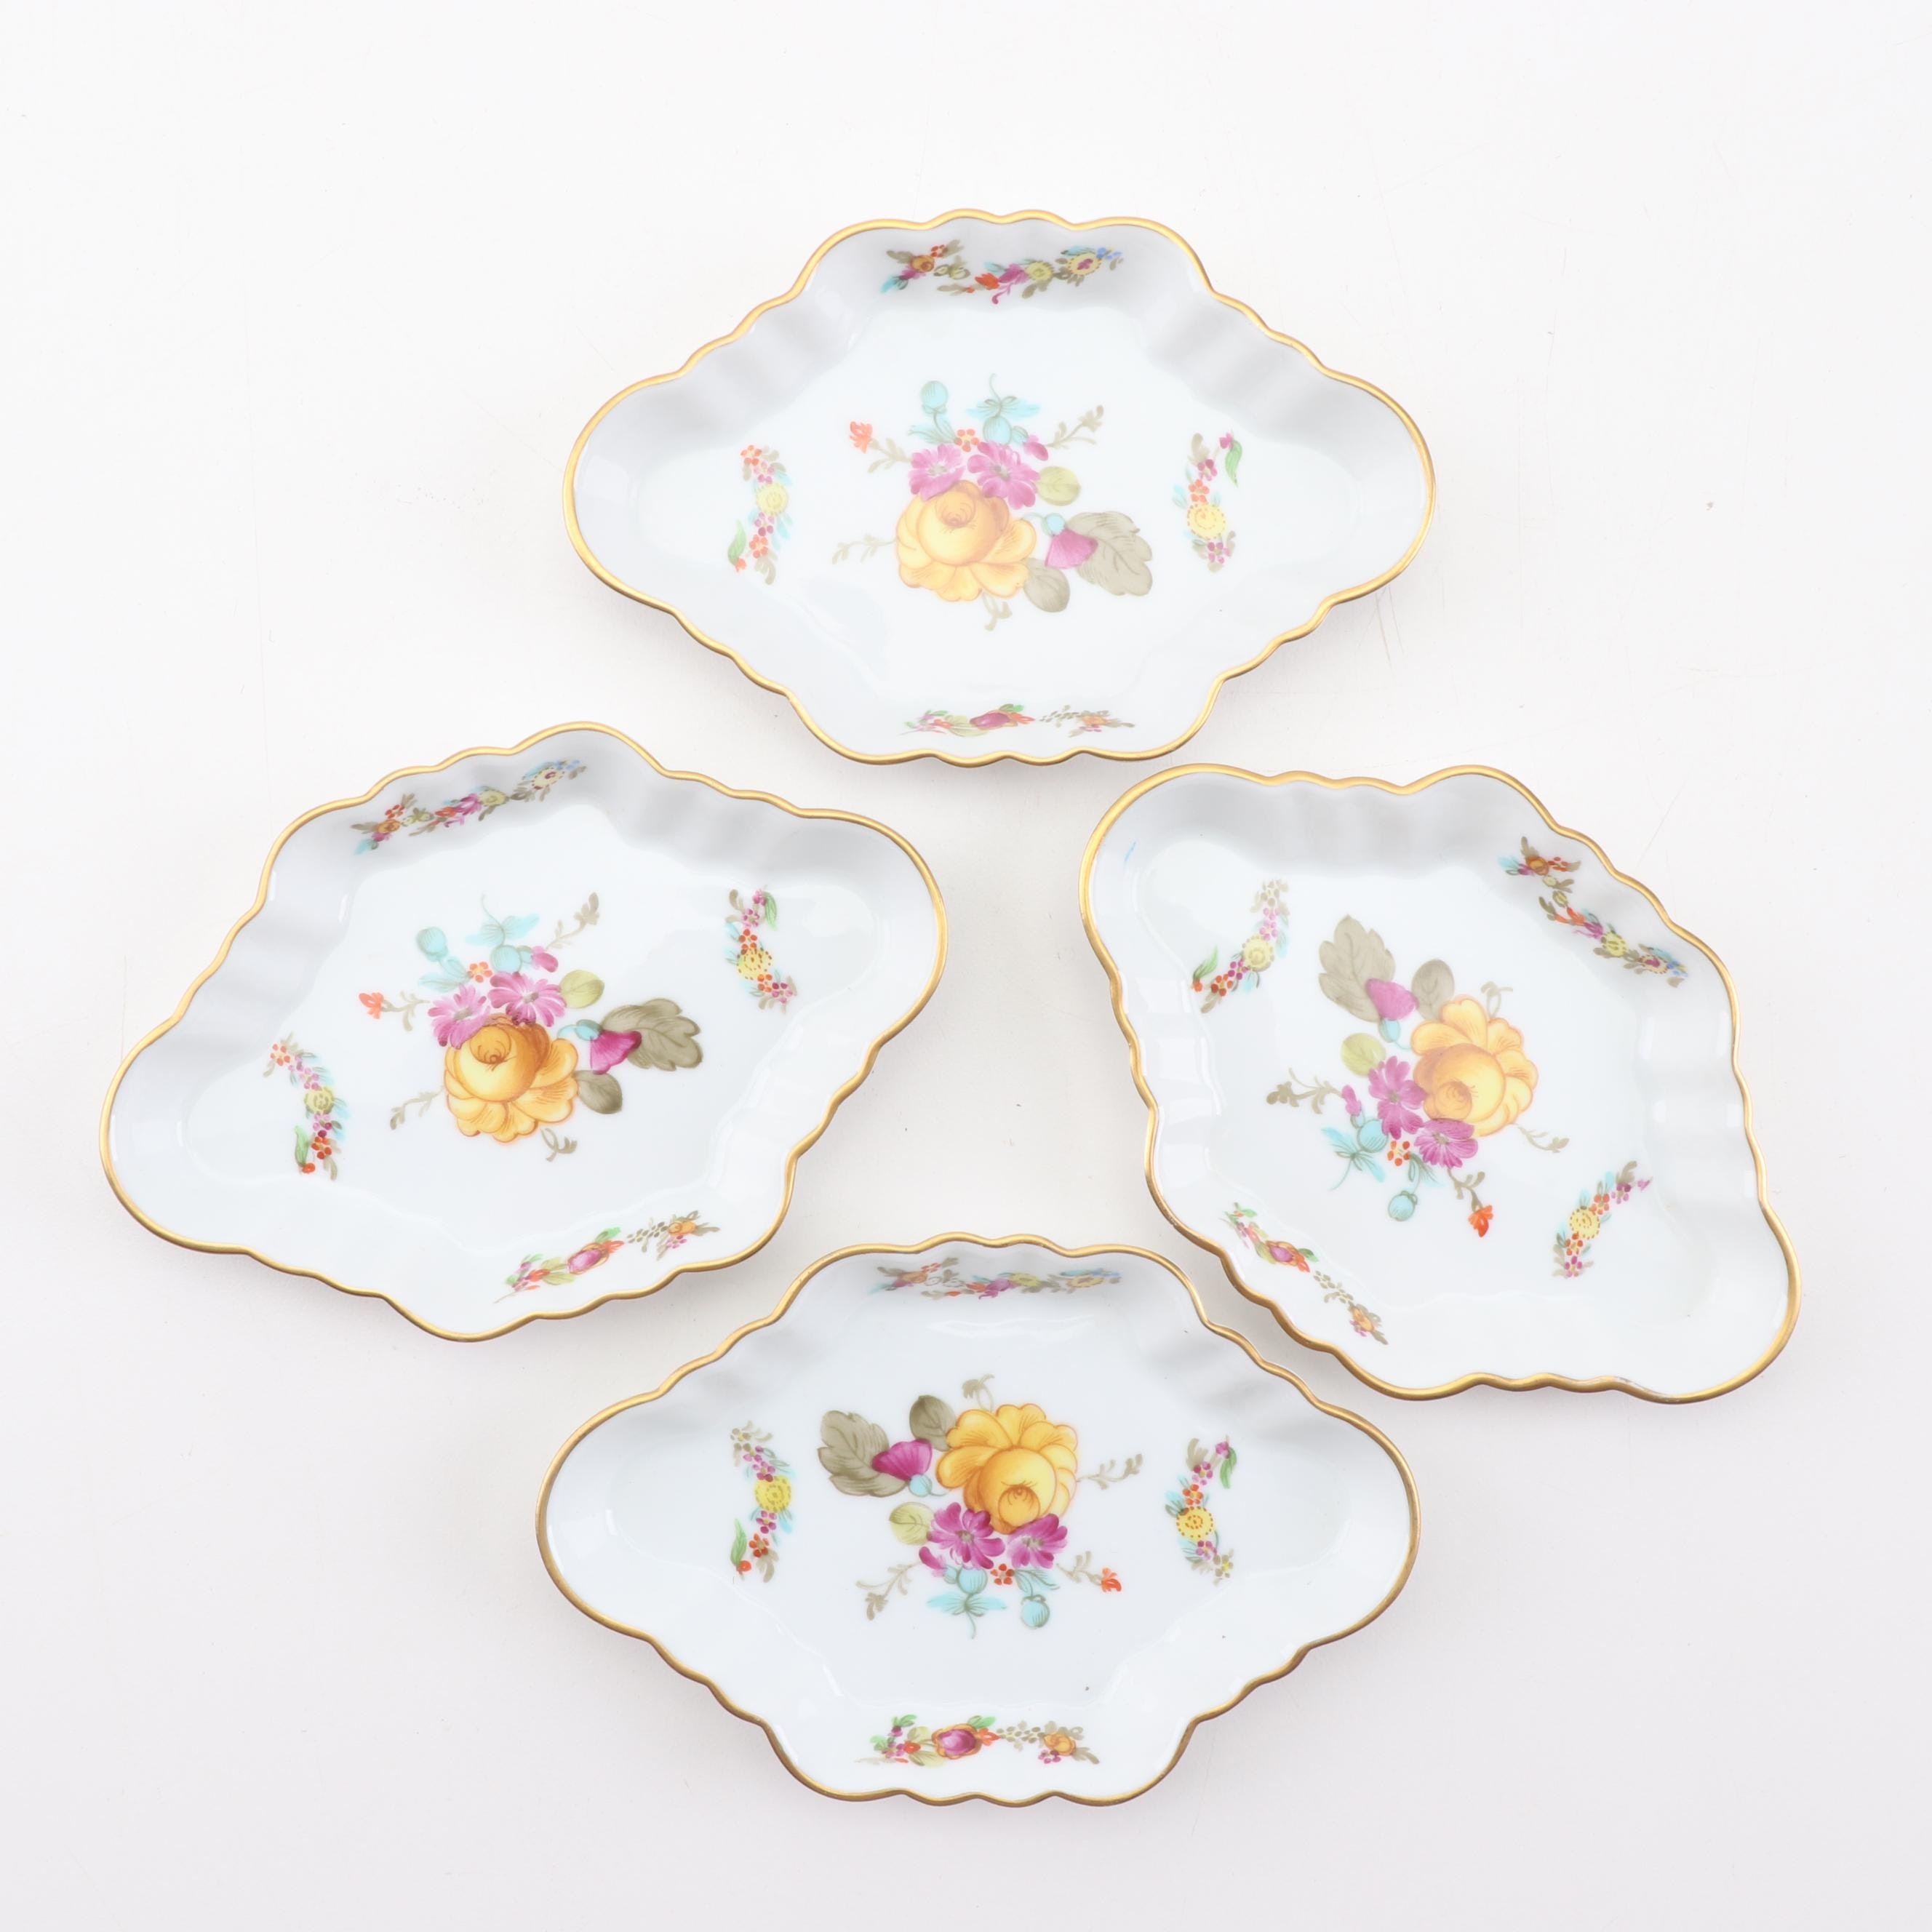 Herend Hungary Hand-Painted Salad Trays